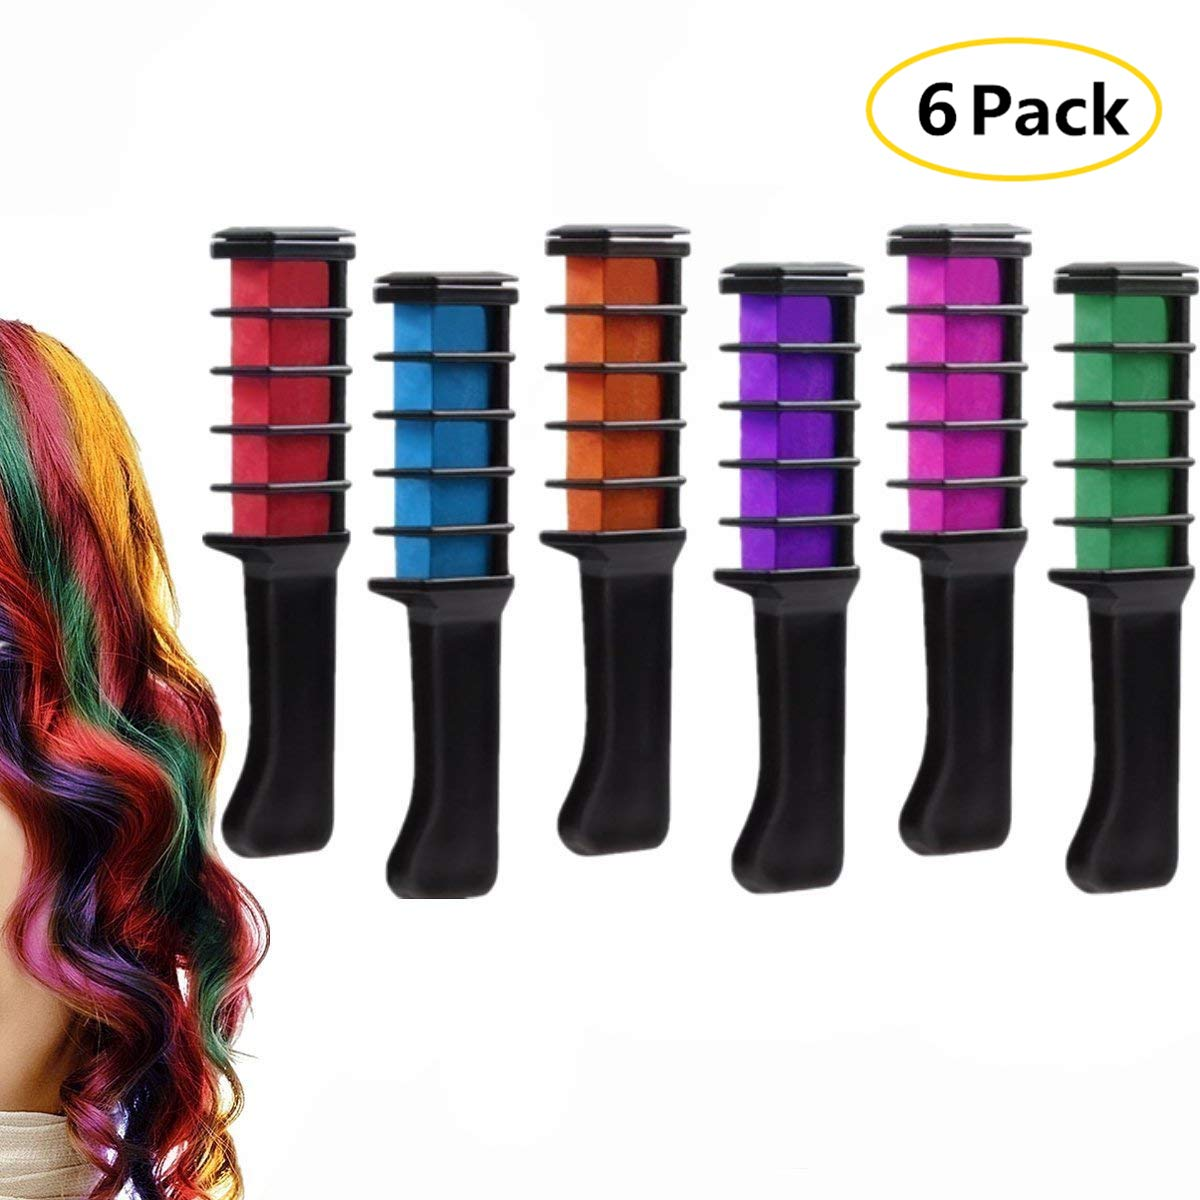 Hair Chalk Comb Set,Washable Temporary Bright Hair Color Dye for Boys and Girls Dress Up,Party, Salon Art DIY,Cosplay,Edge Chalkers,6 Colors